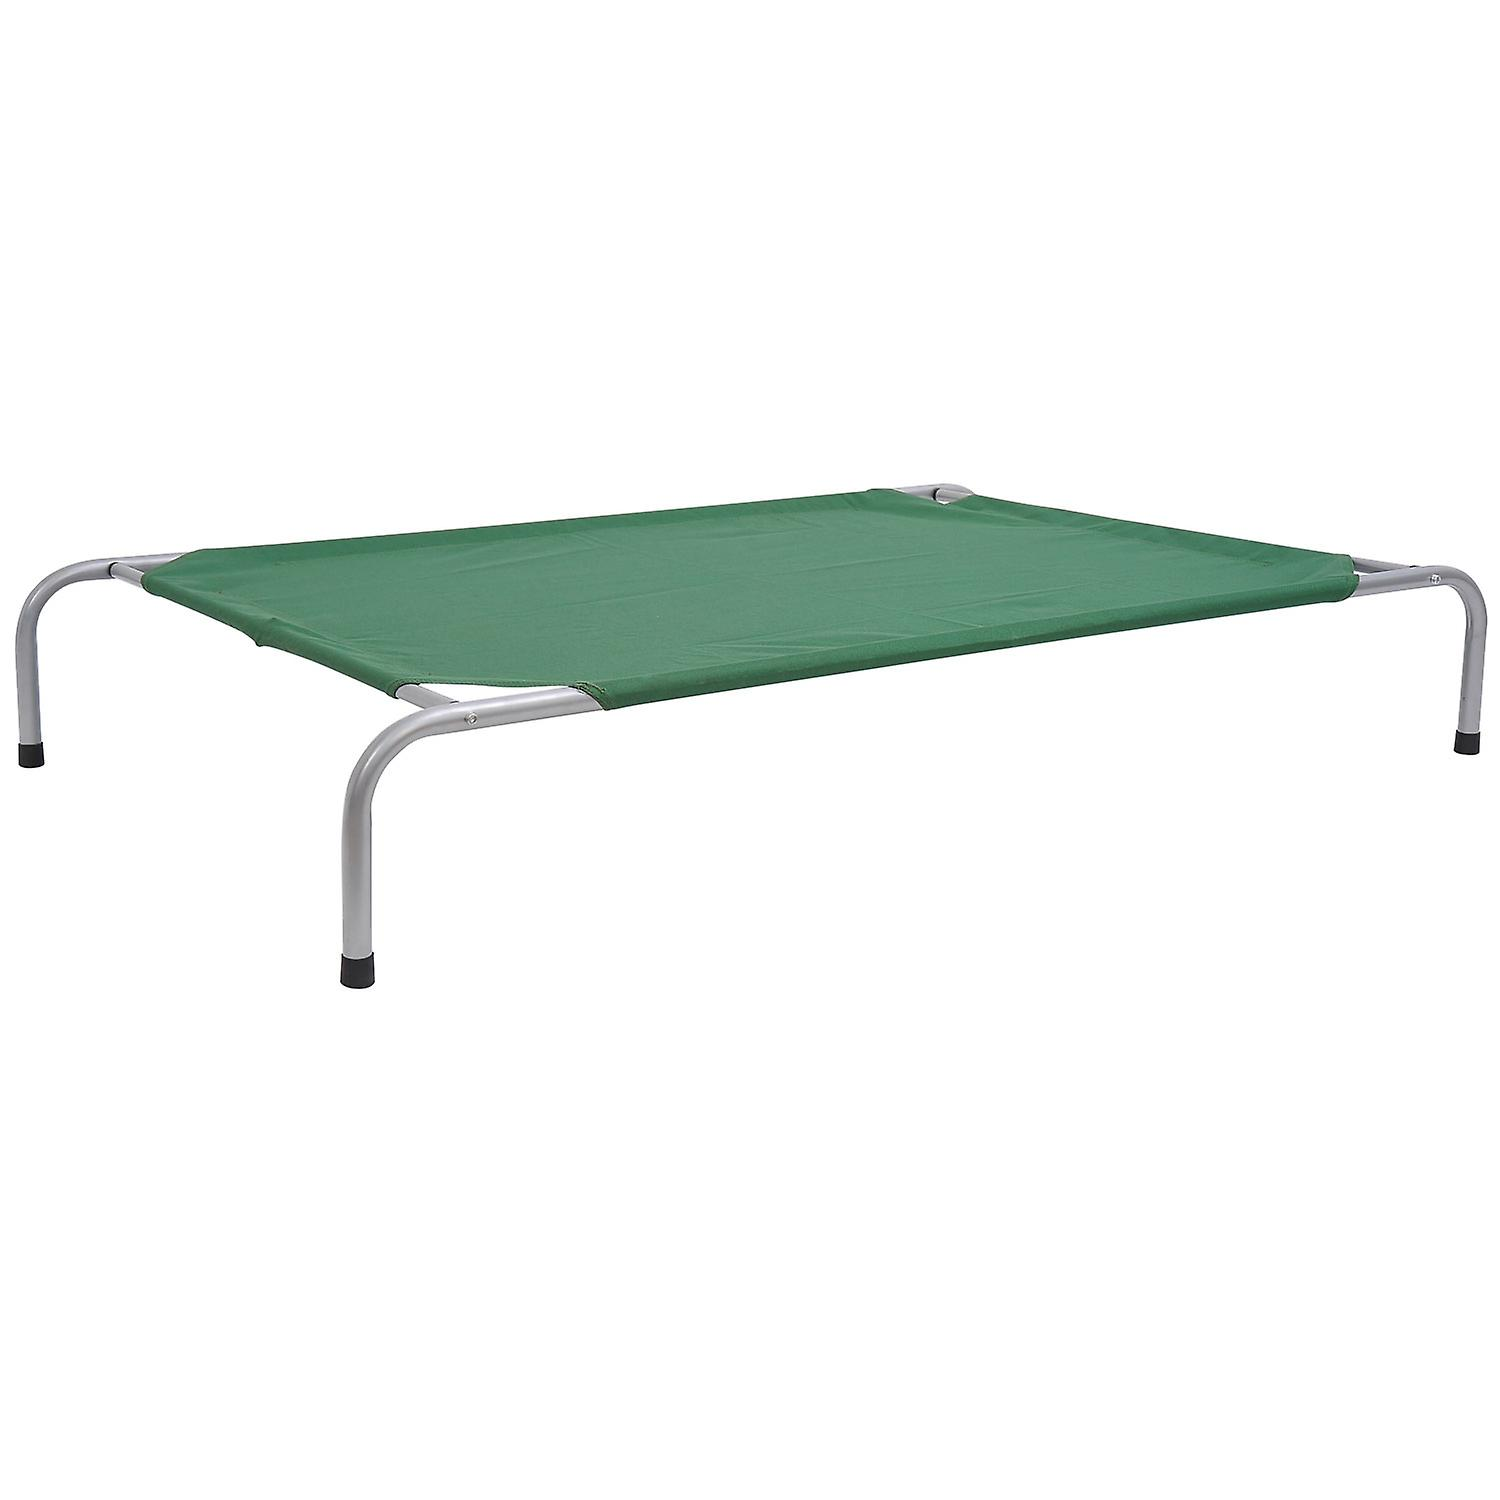 PawHut Dog Elevated Raised Cot Bed Portable Camping Basket - Green Extra Large